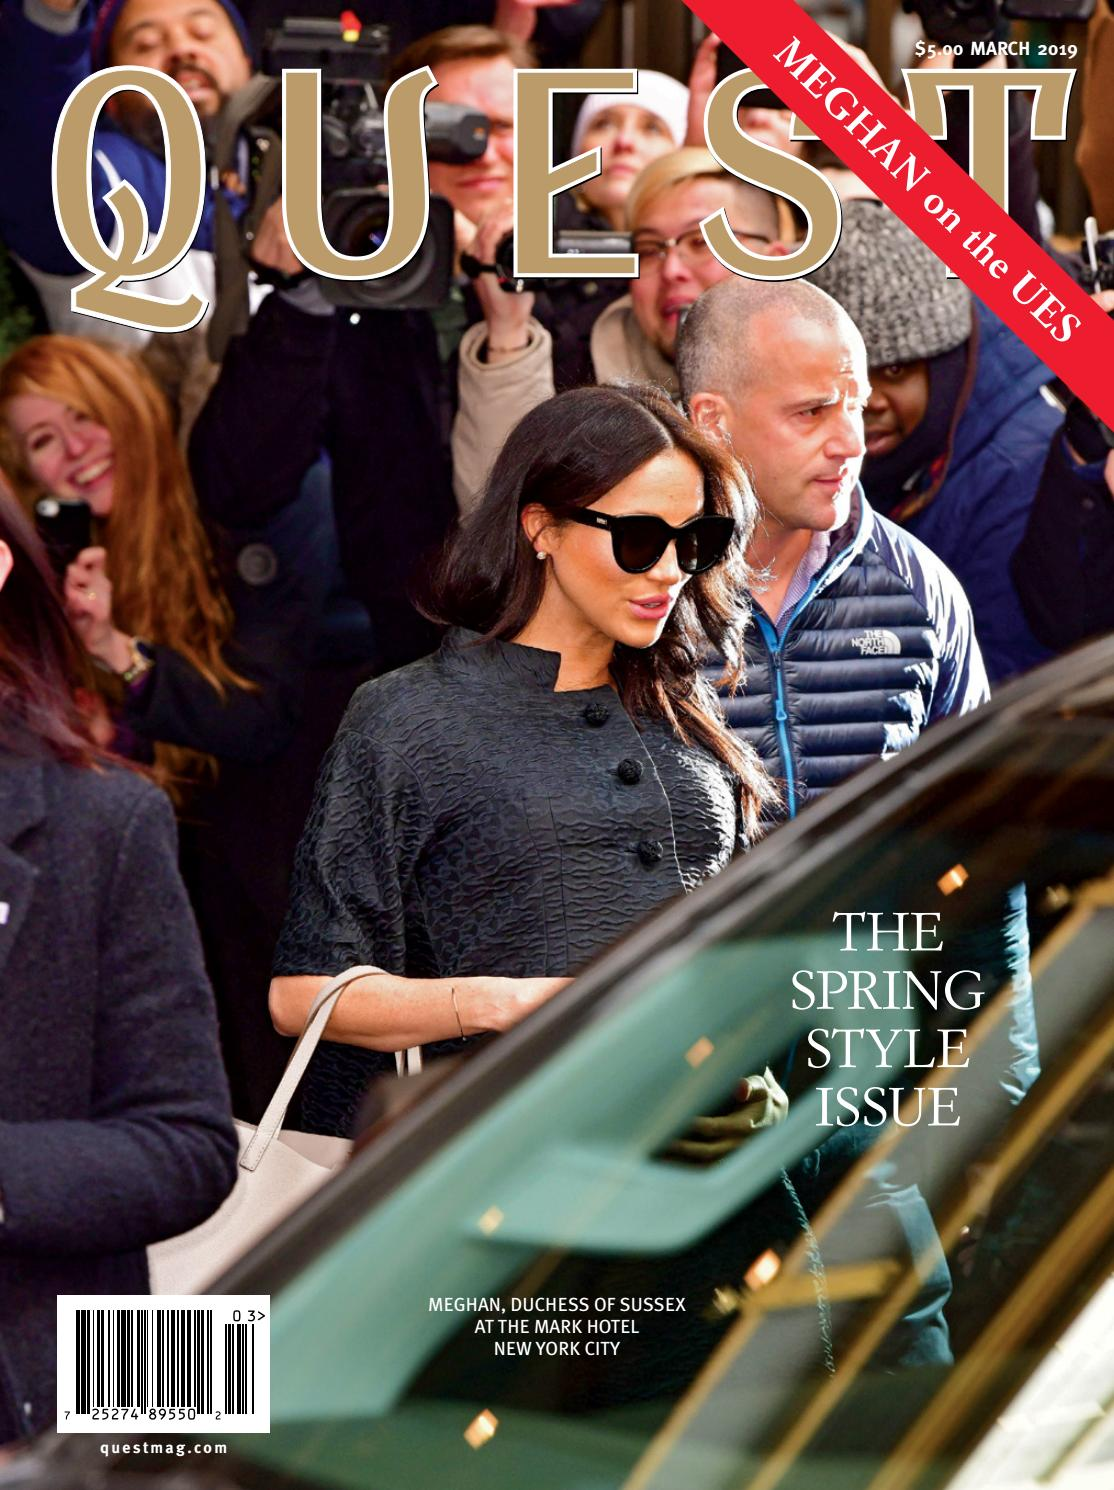 Quest March 2019 by QUEST Magazine - issuu